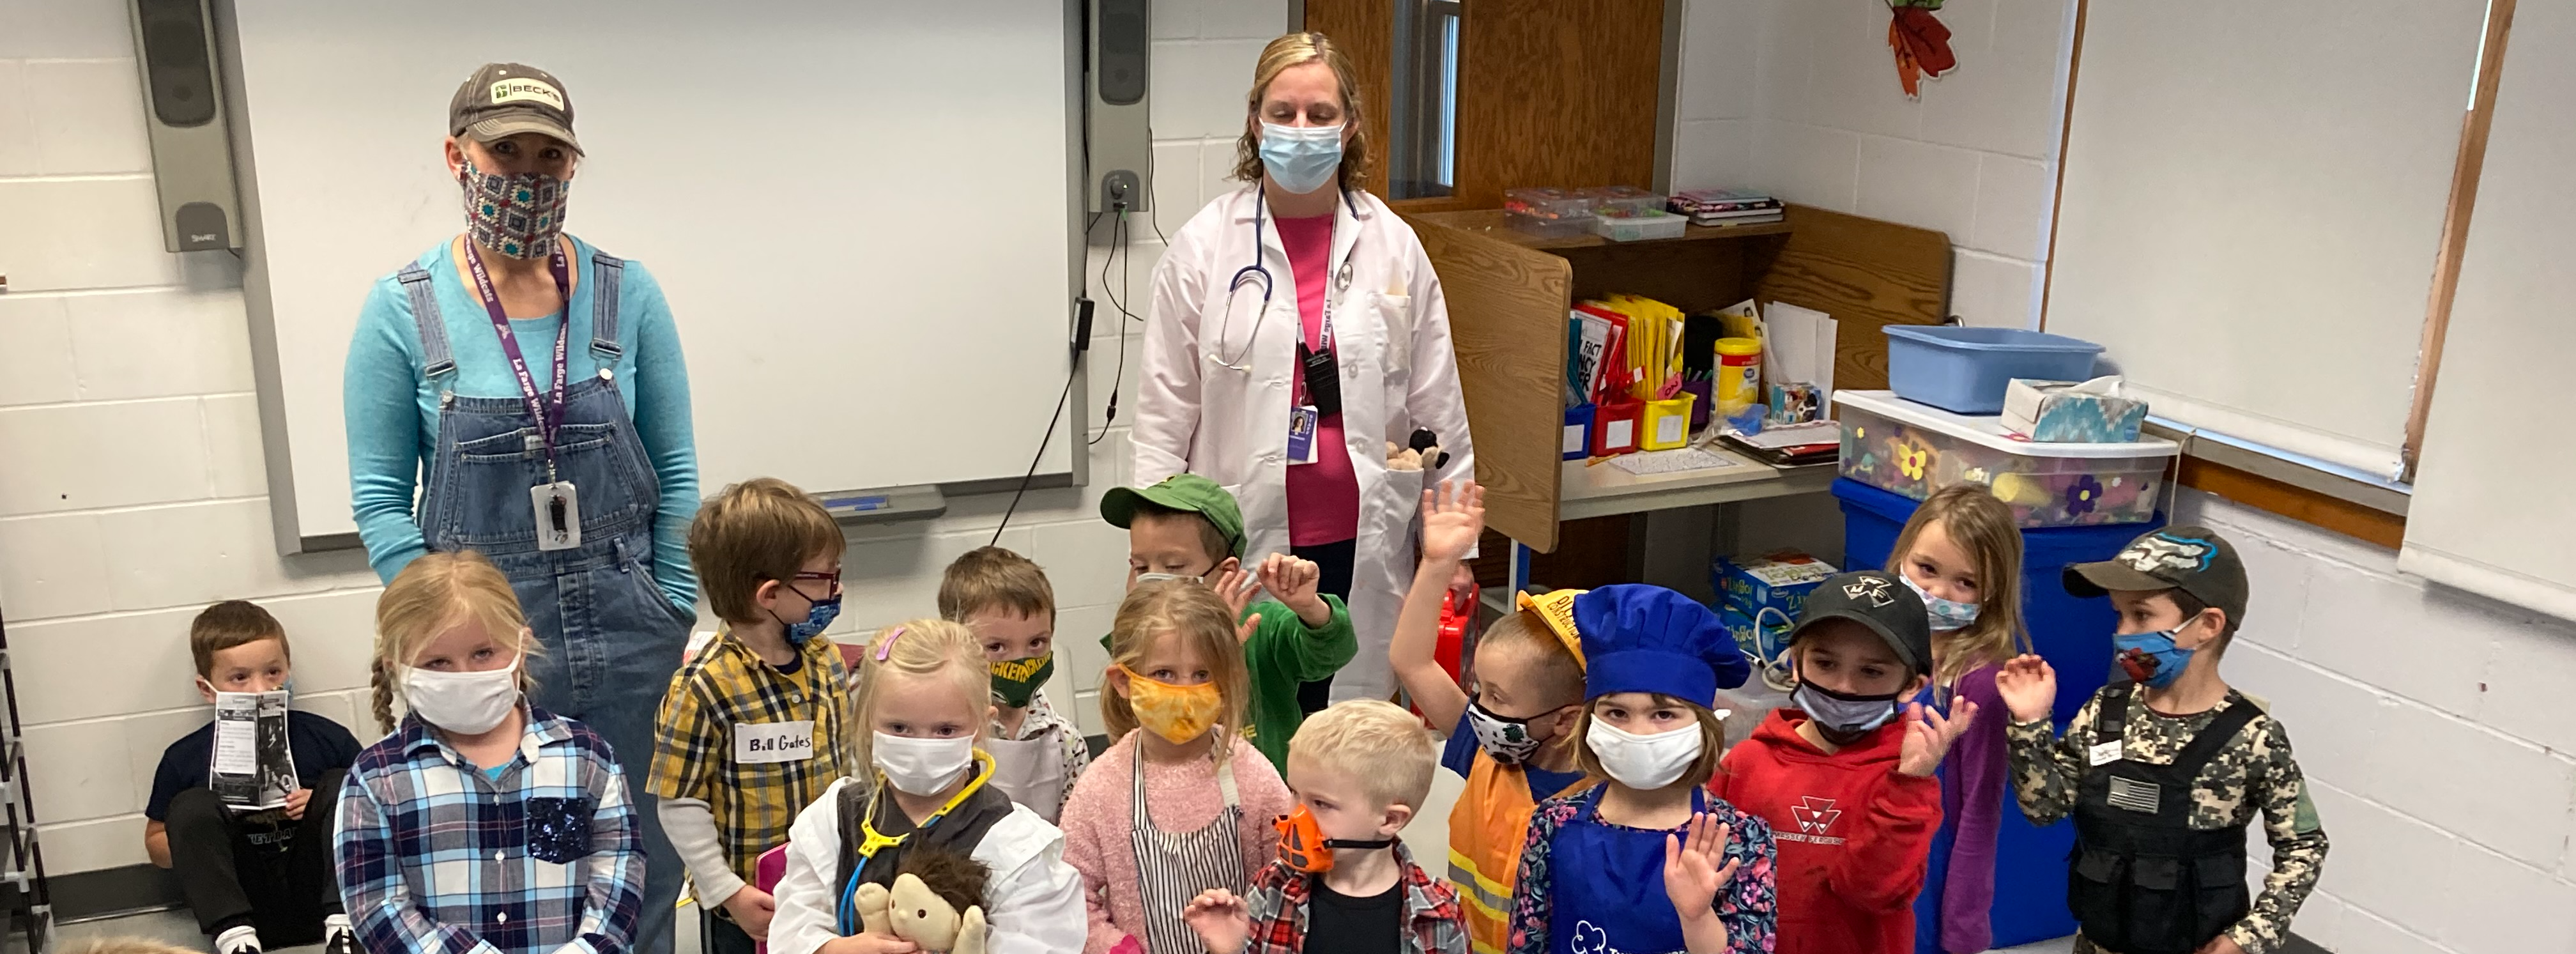 Students wearing masks in classroom with nurse